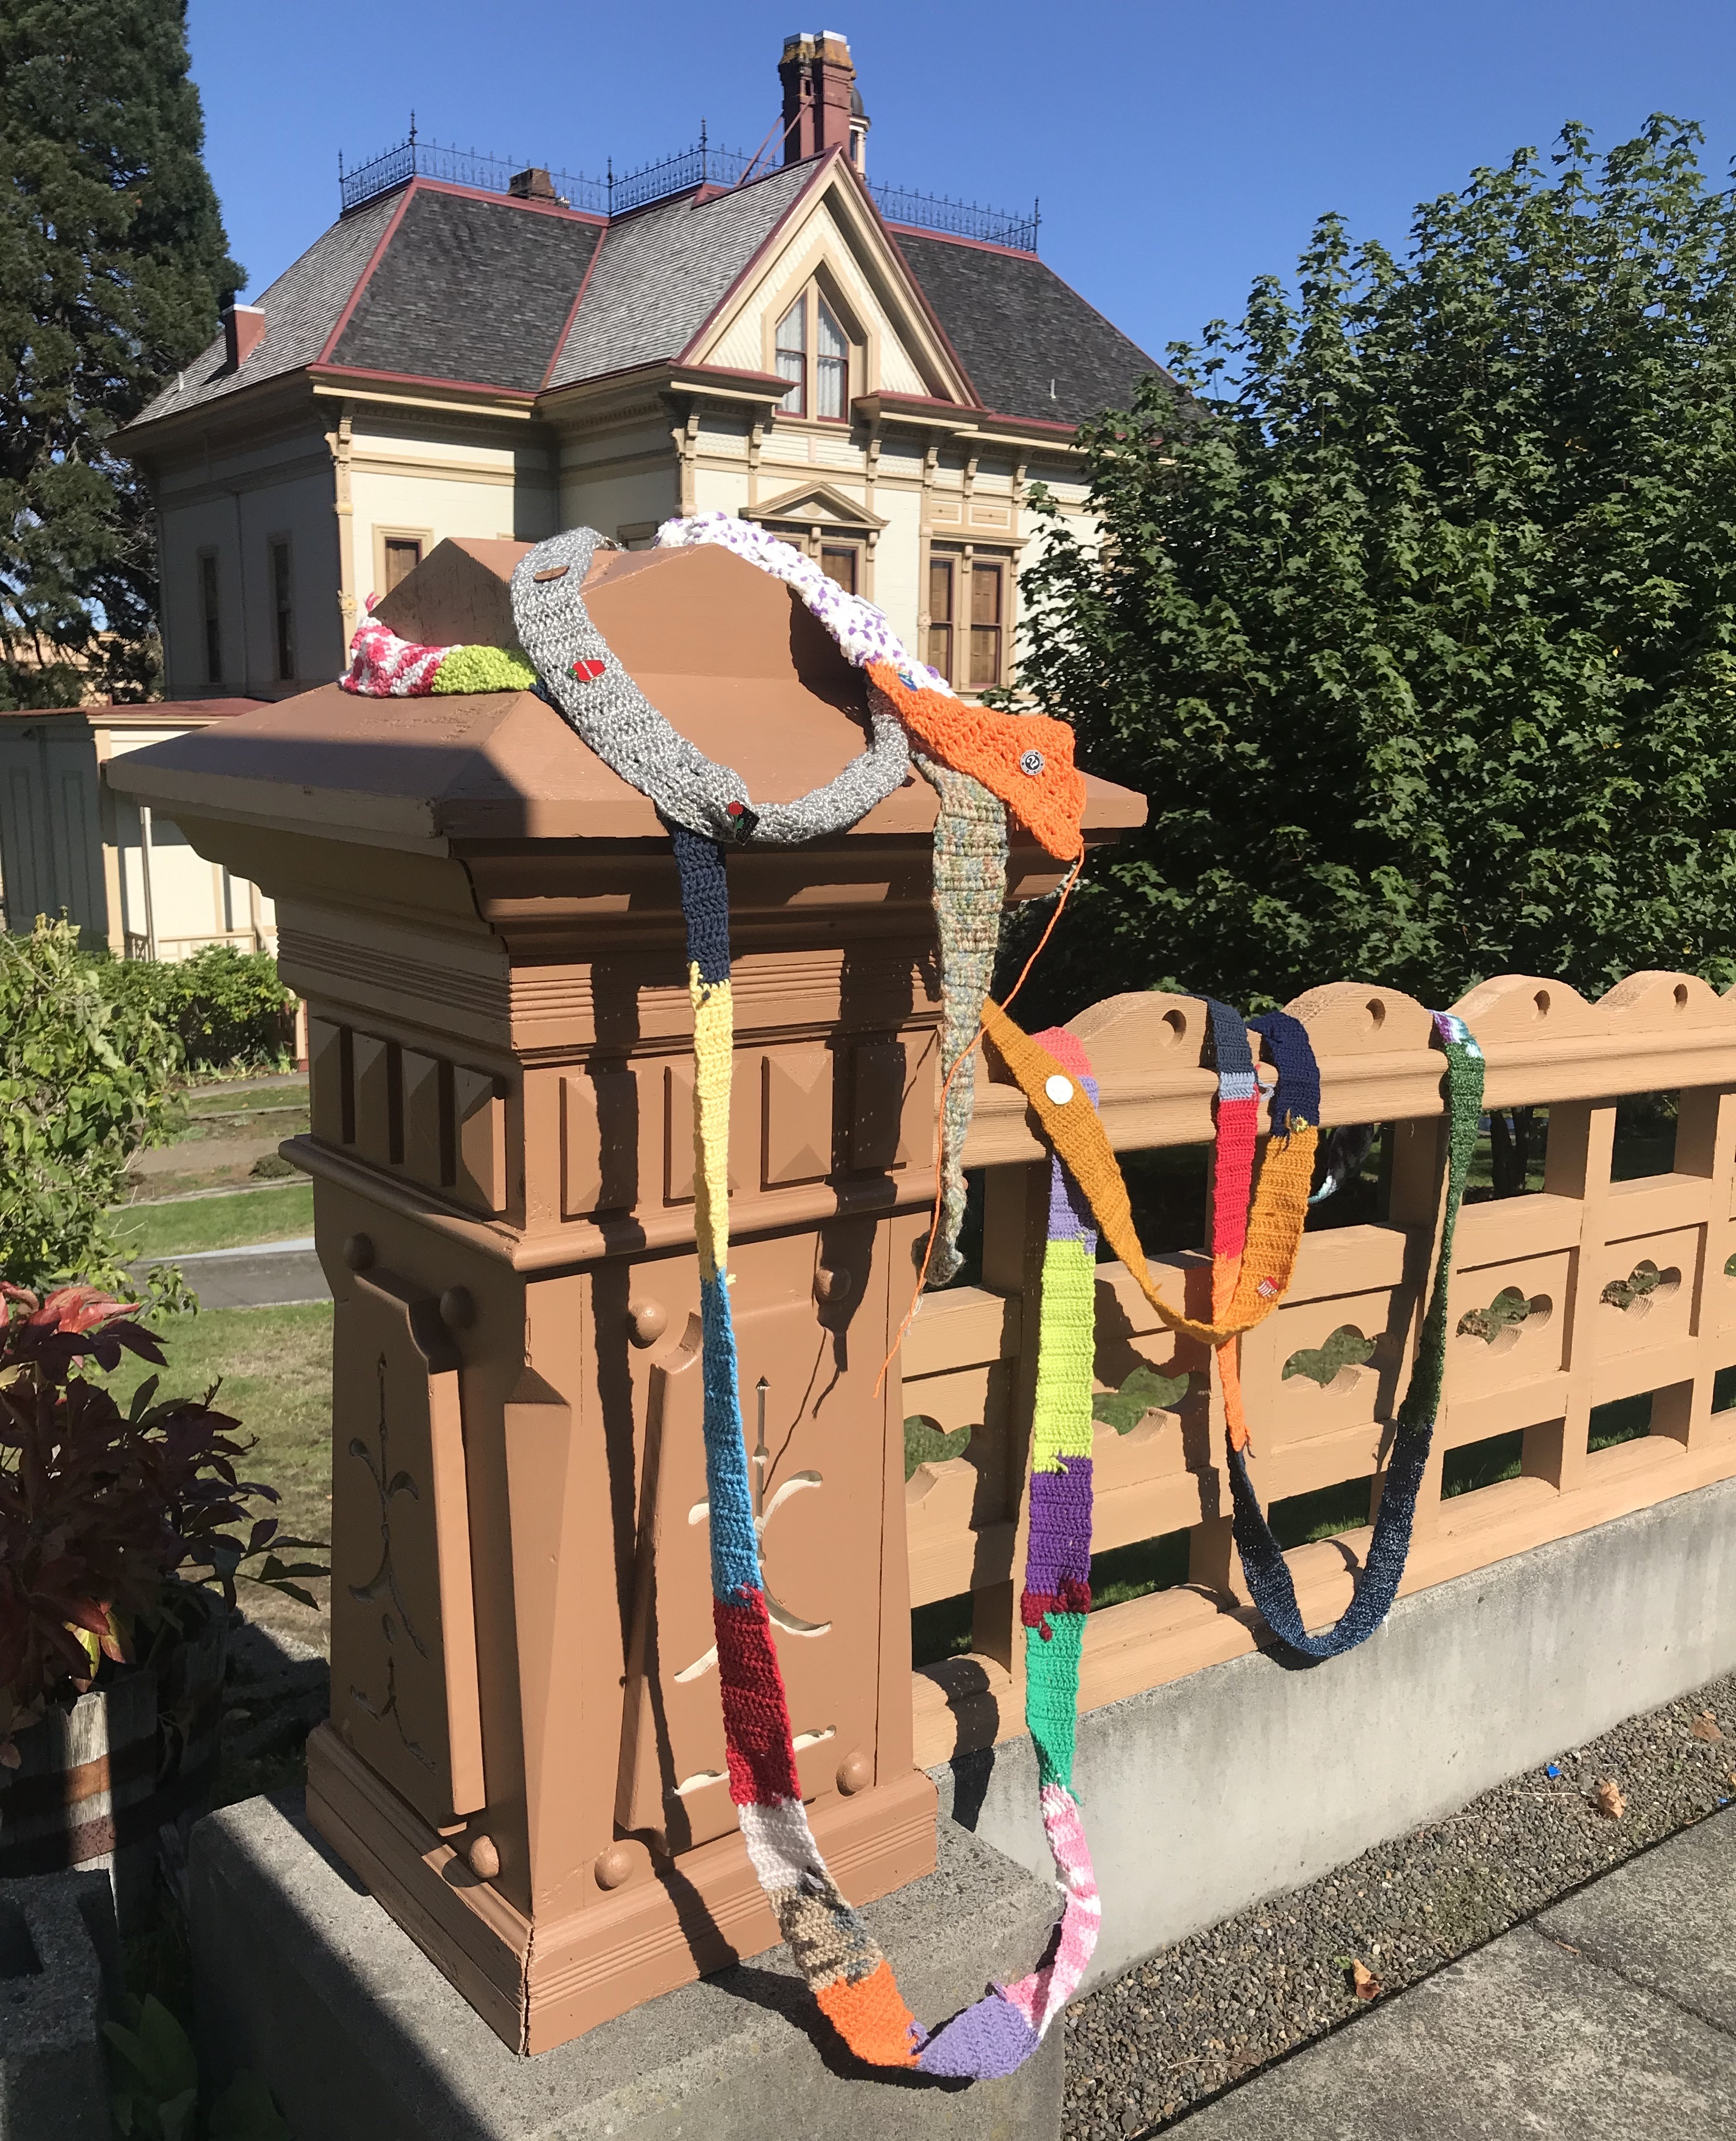 The Ugly Scarf in Astoria, Oregon